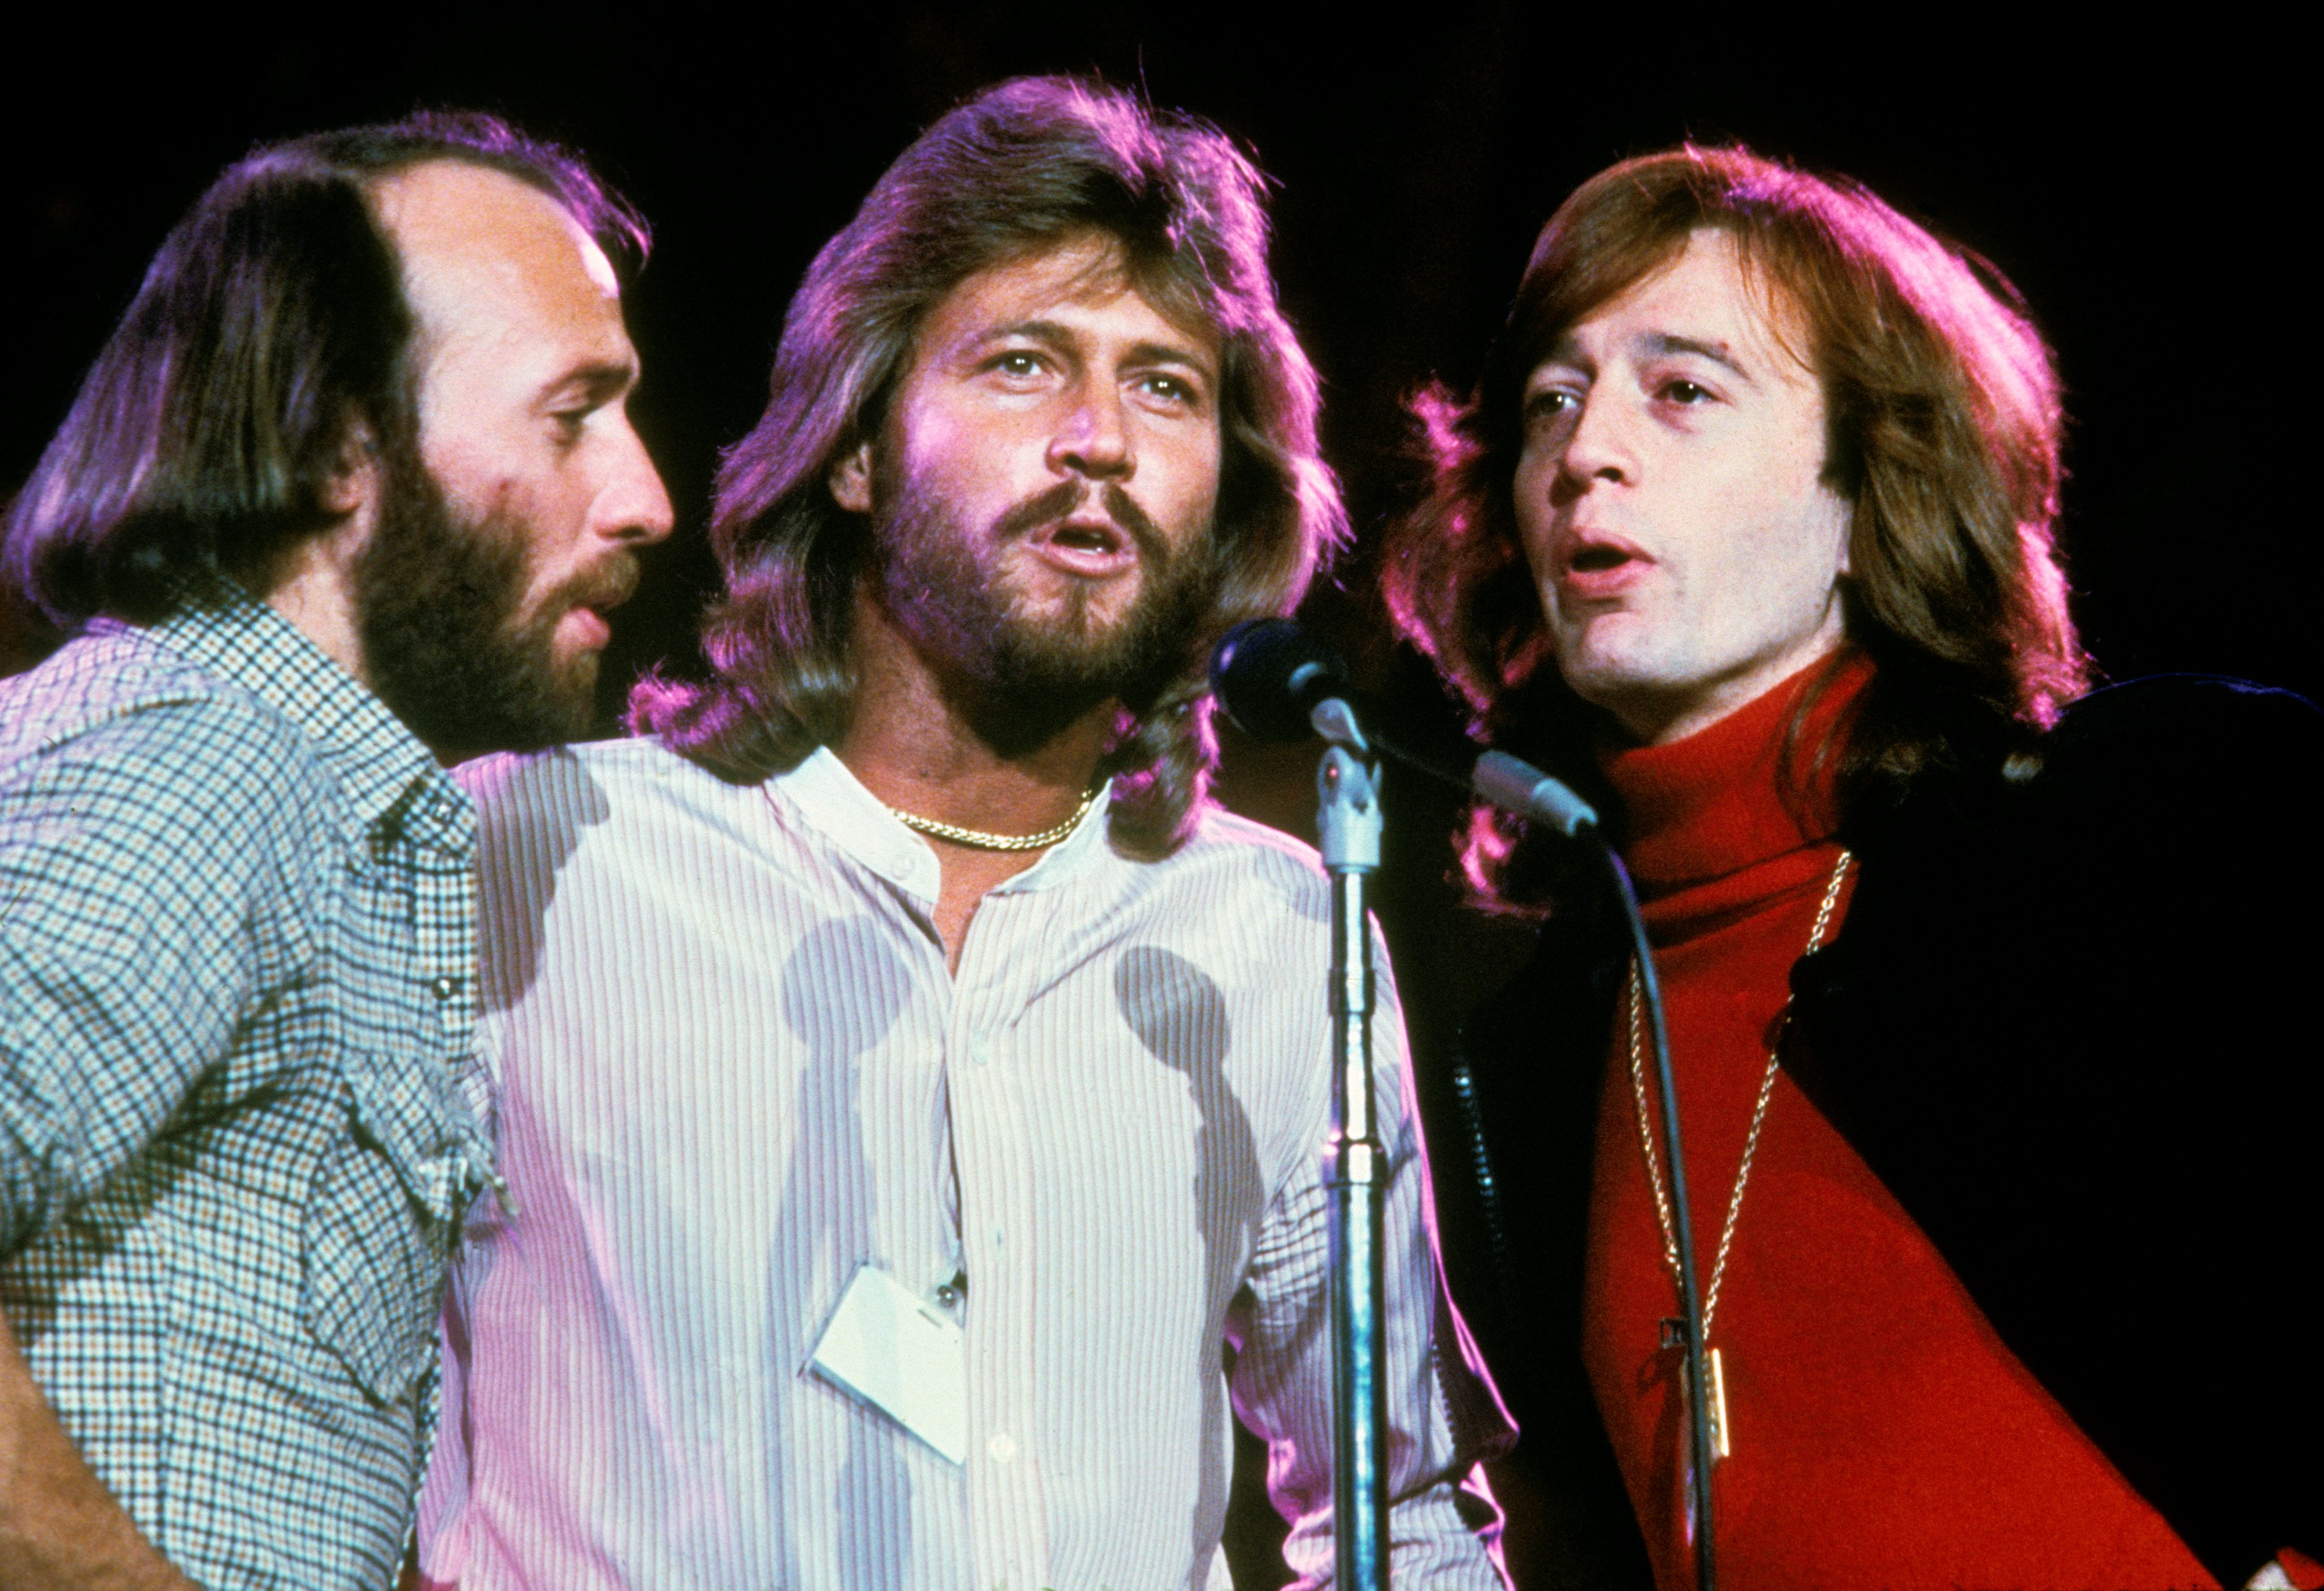 48fa8b8db The Bee Gees harmonize at one microphone while performing on stage at the  UNICEF A Gift of Song concert held at the United Nations General Assembly,  ...